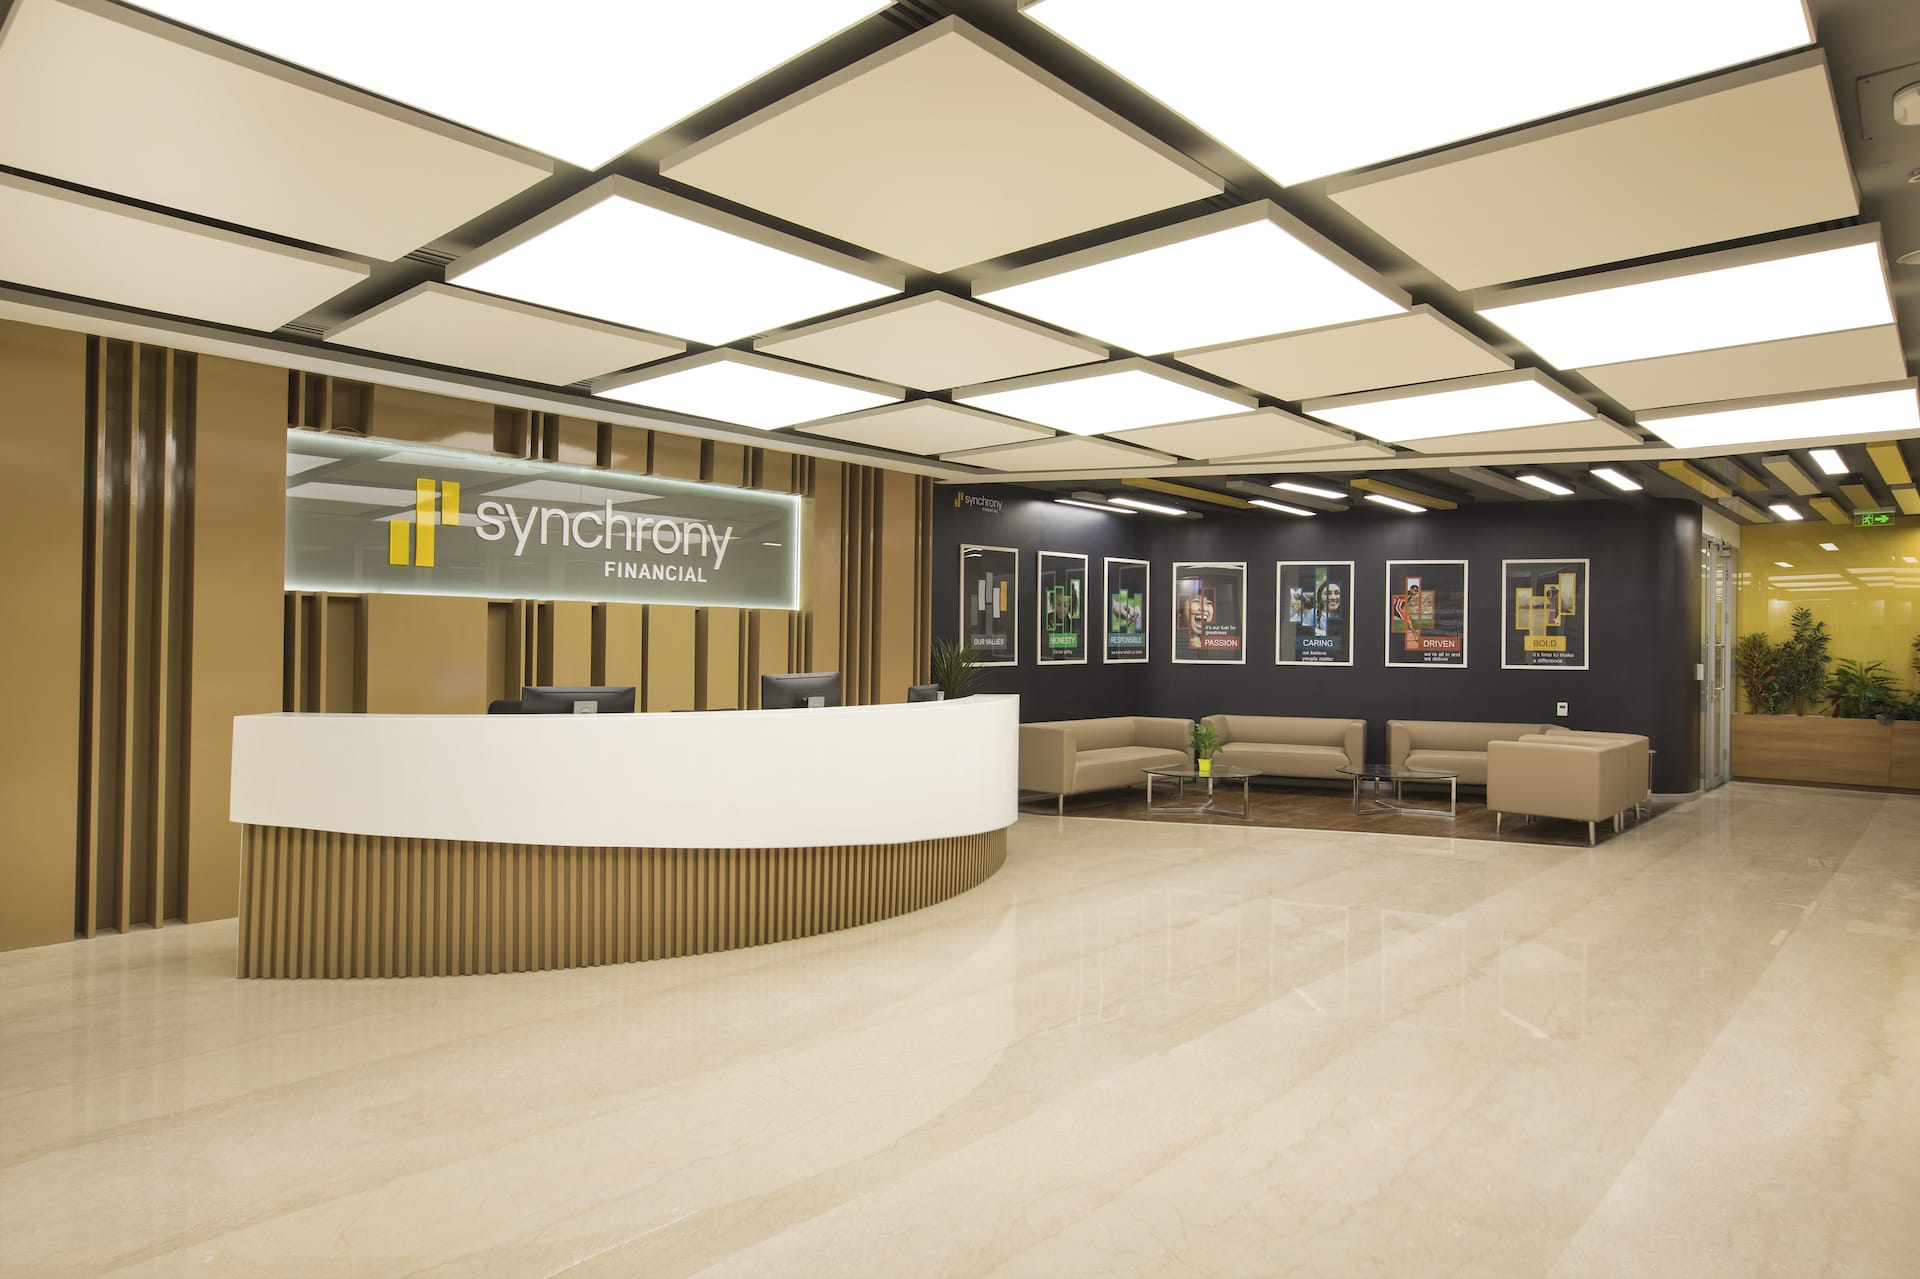 Synchrony Financial – Hyderabad